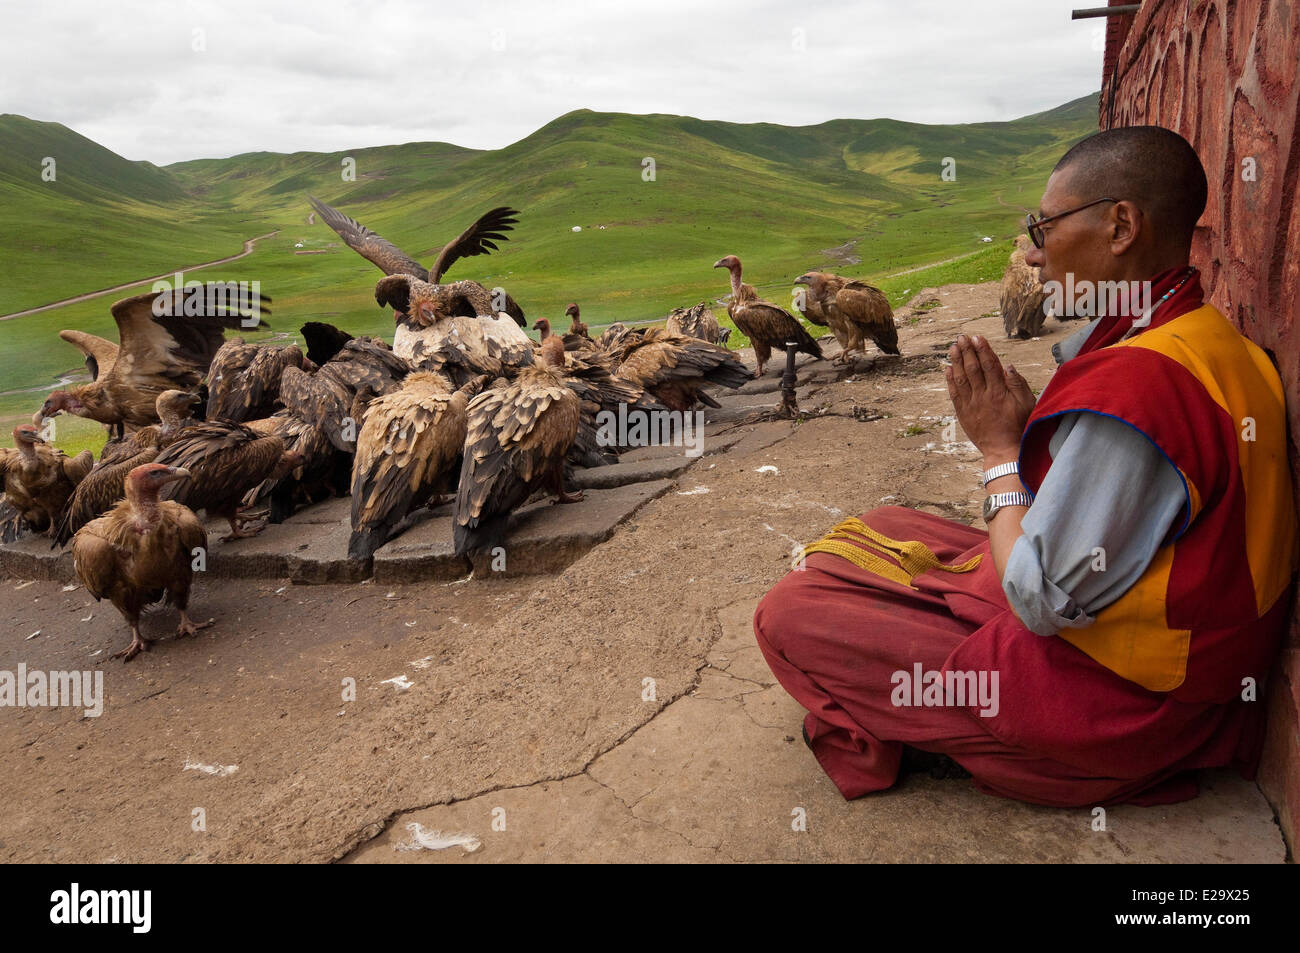 China, Tibet, Amdo, ragyapa, or monk in charge of performing the rituals of the Dead, during a sky burial funeral - Stock Image